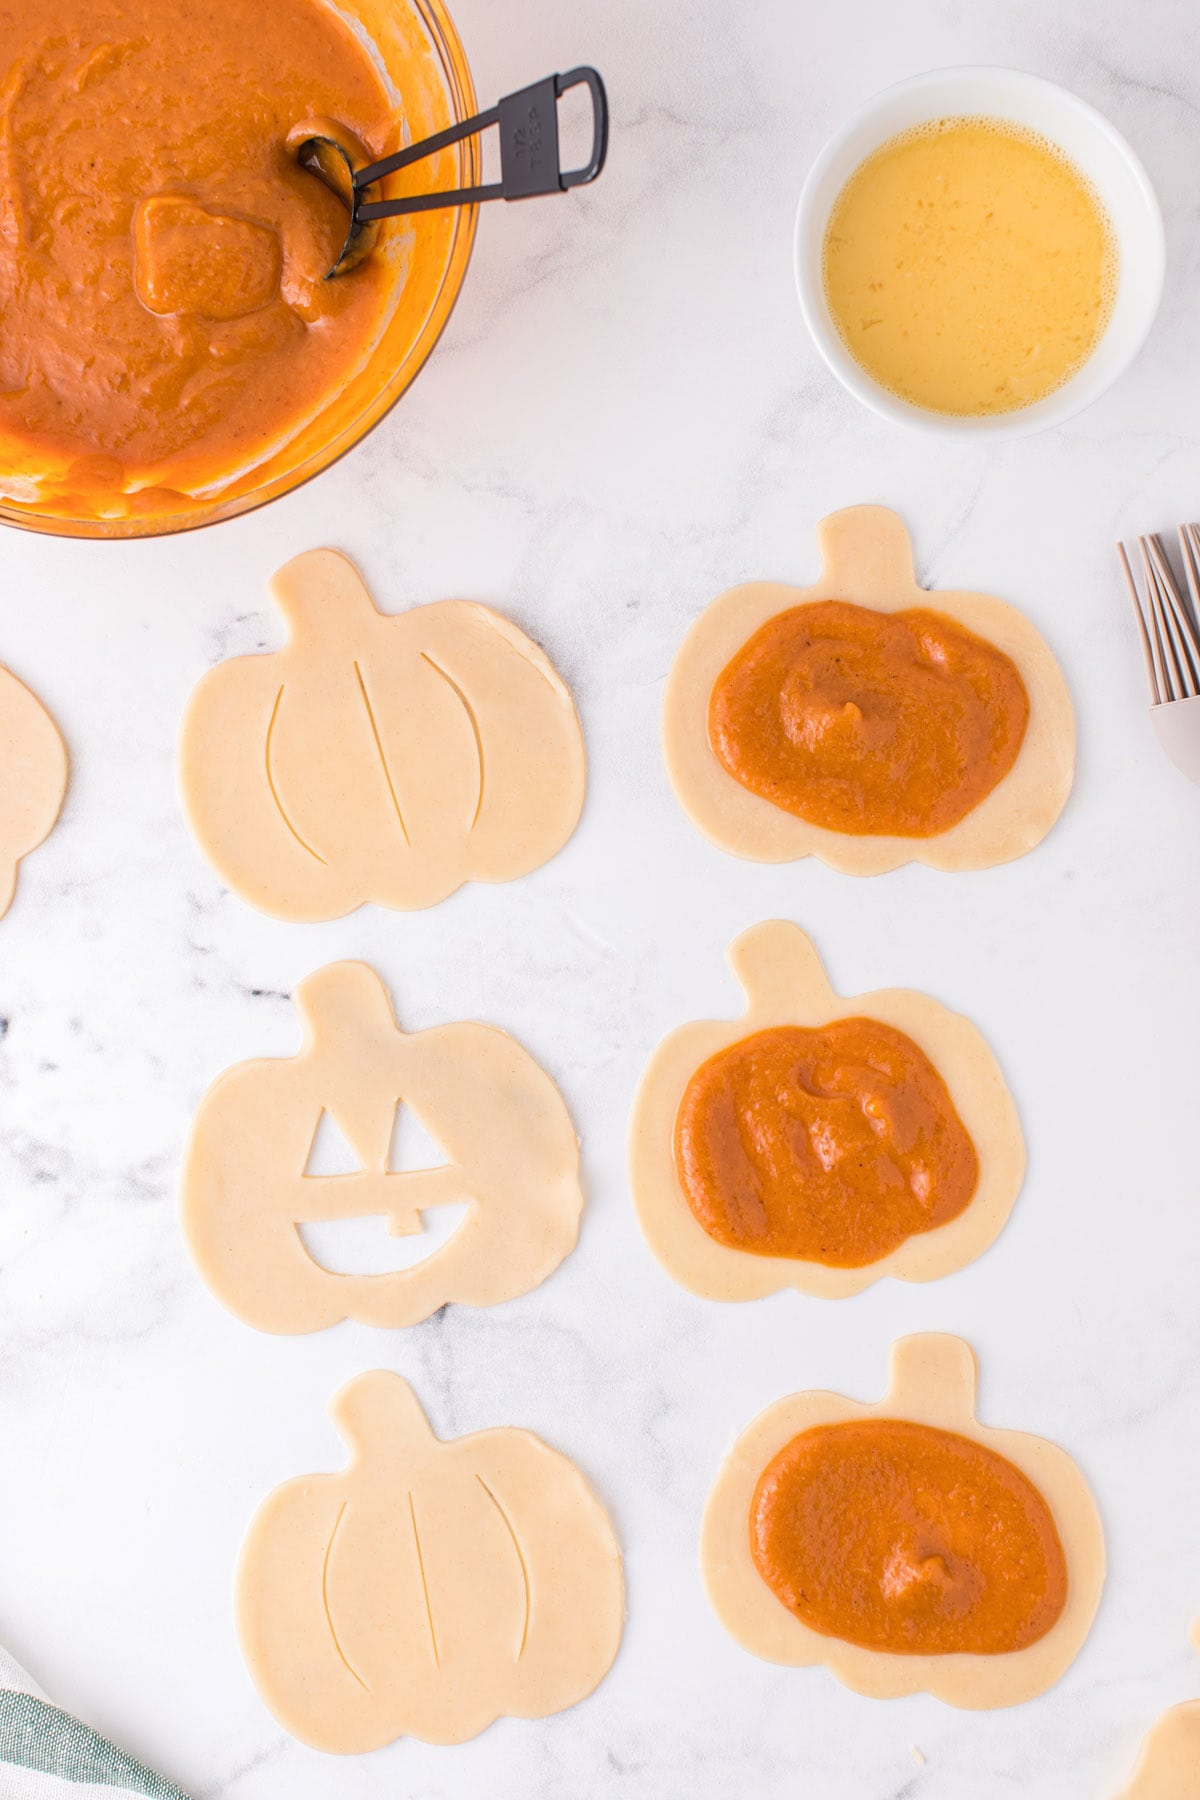 Spoon 1-2 Tablespoons of the pumpkin filling